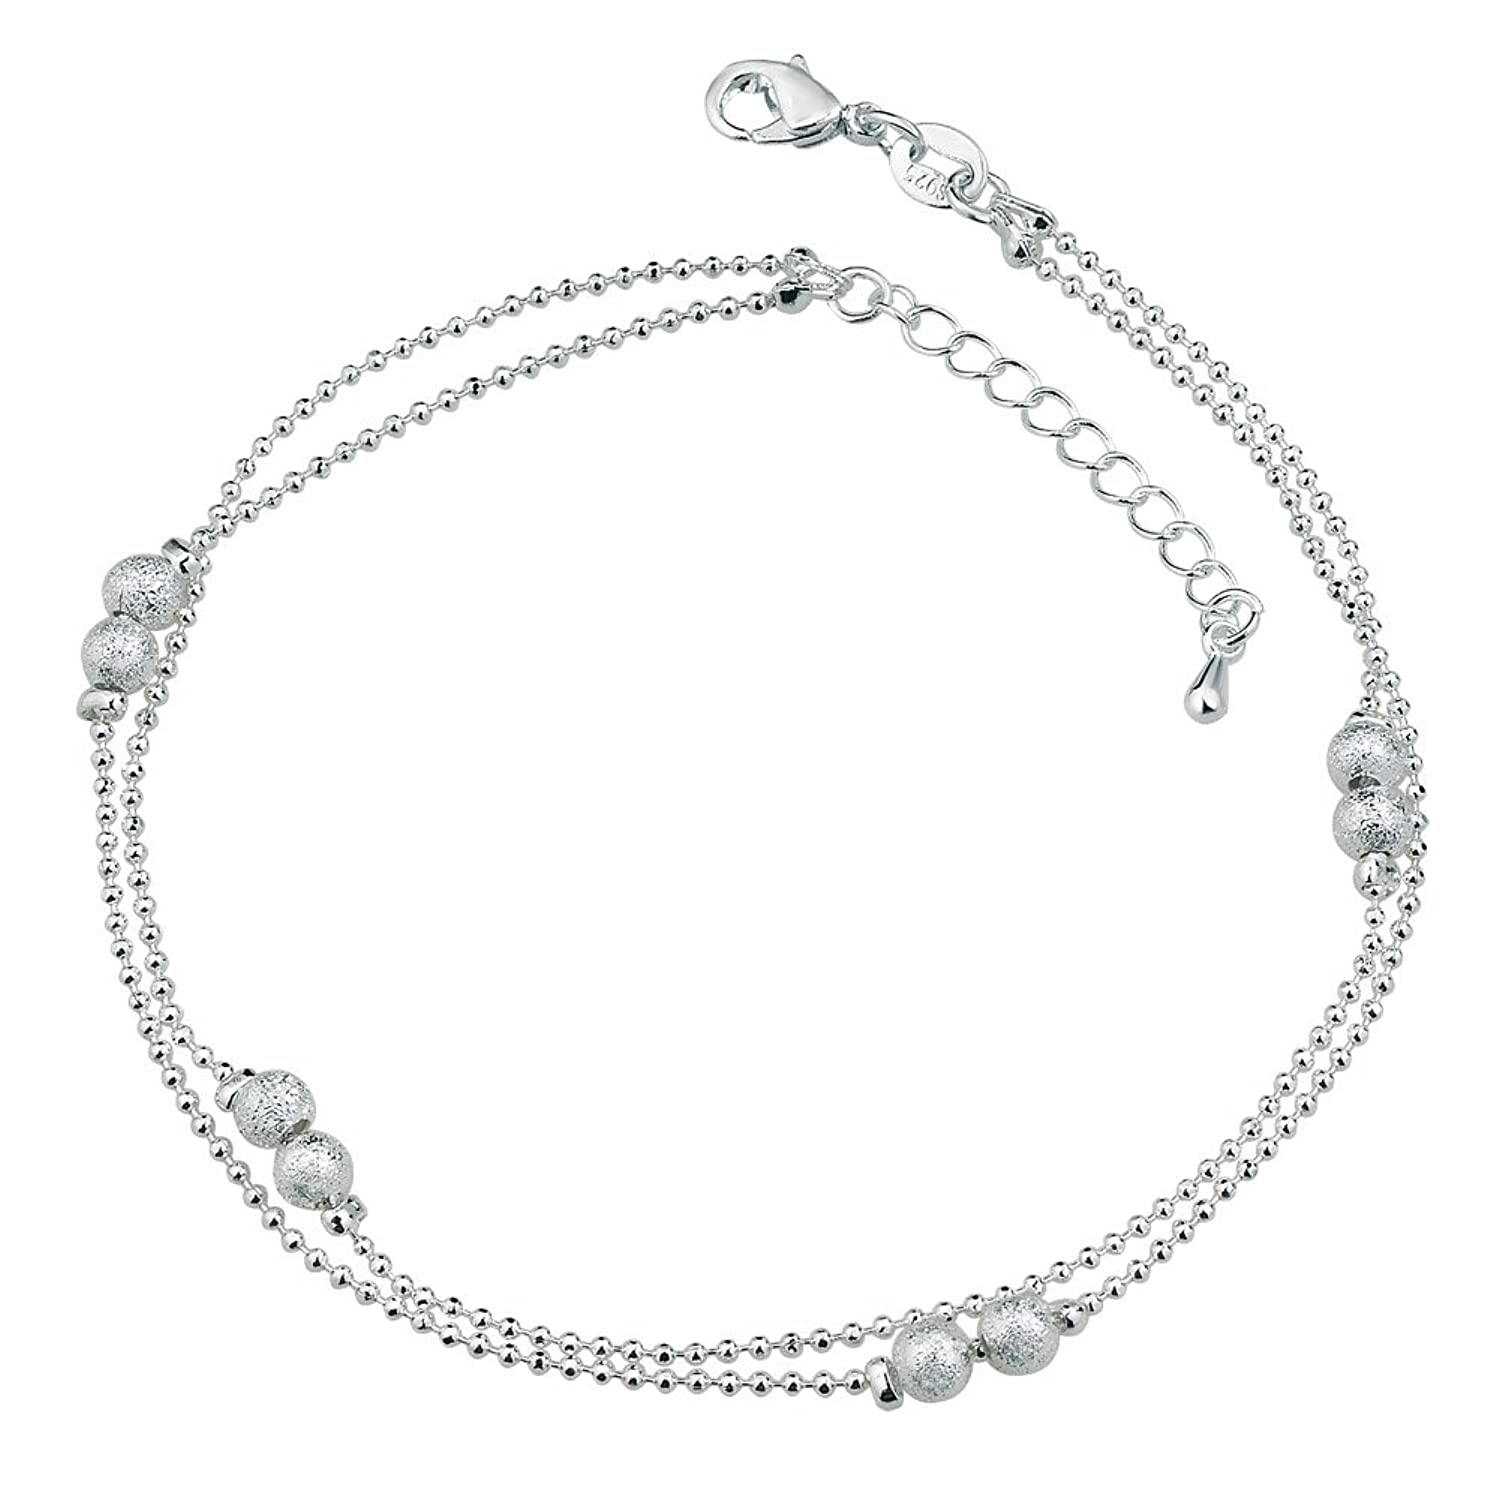 bracelet jewelry chain silver dp singapore bling amazon ankle anklet com sterling inch italy